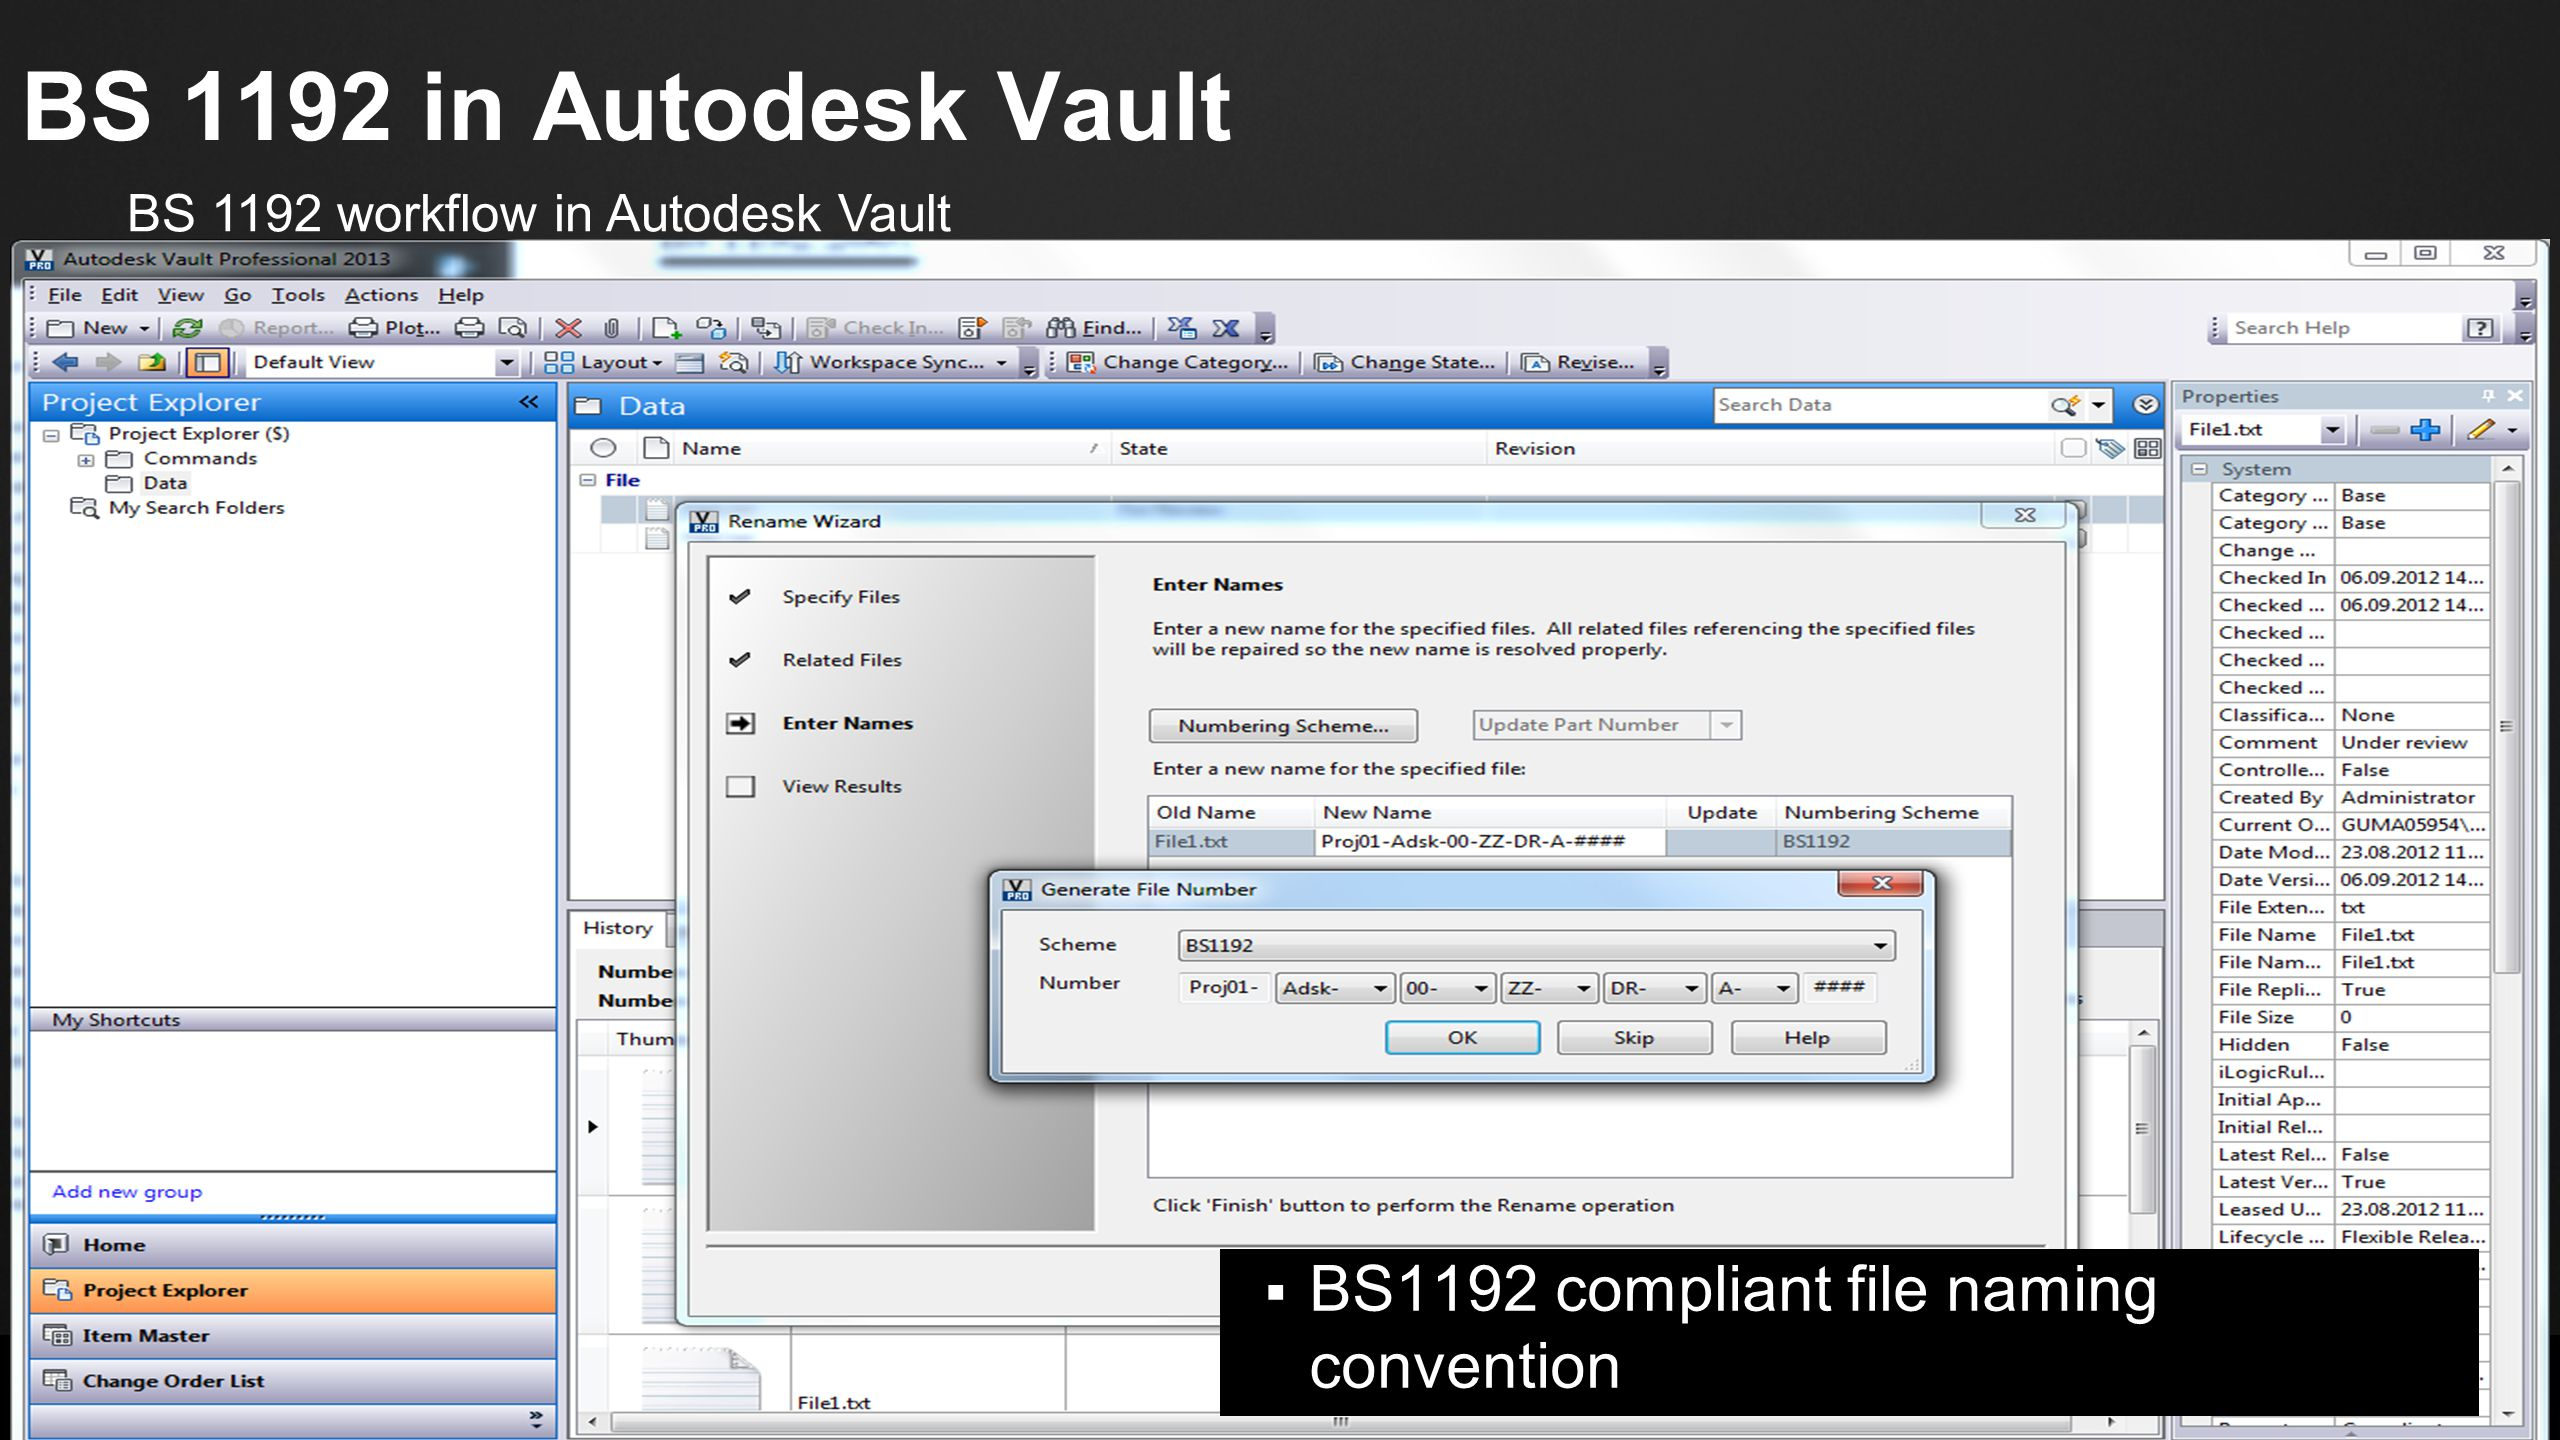 © 2012 Autodesk BS 1192 in Autodesk Vault  BS1192 compliant file naming convention BS 1192 workflow in Autodesk Vault